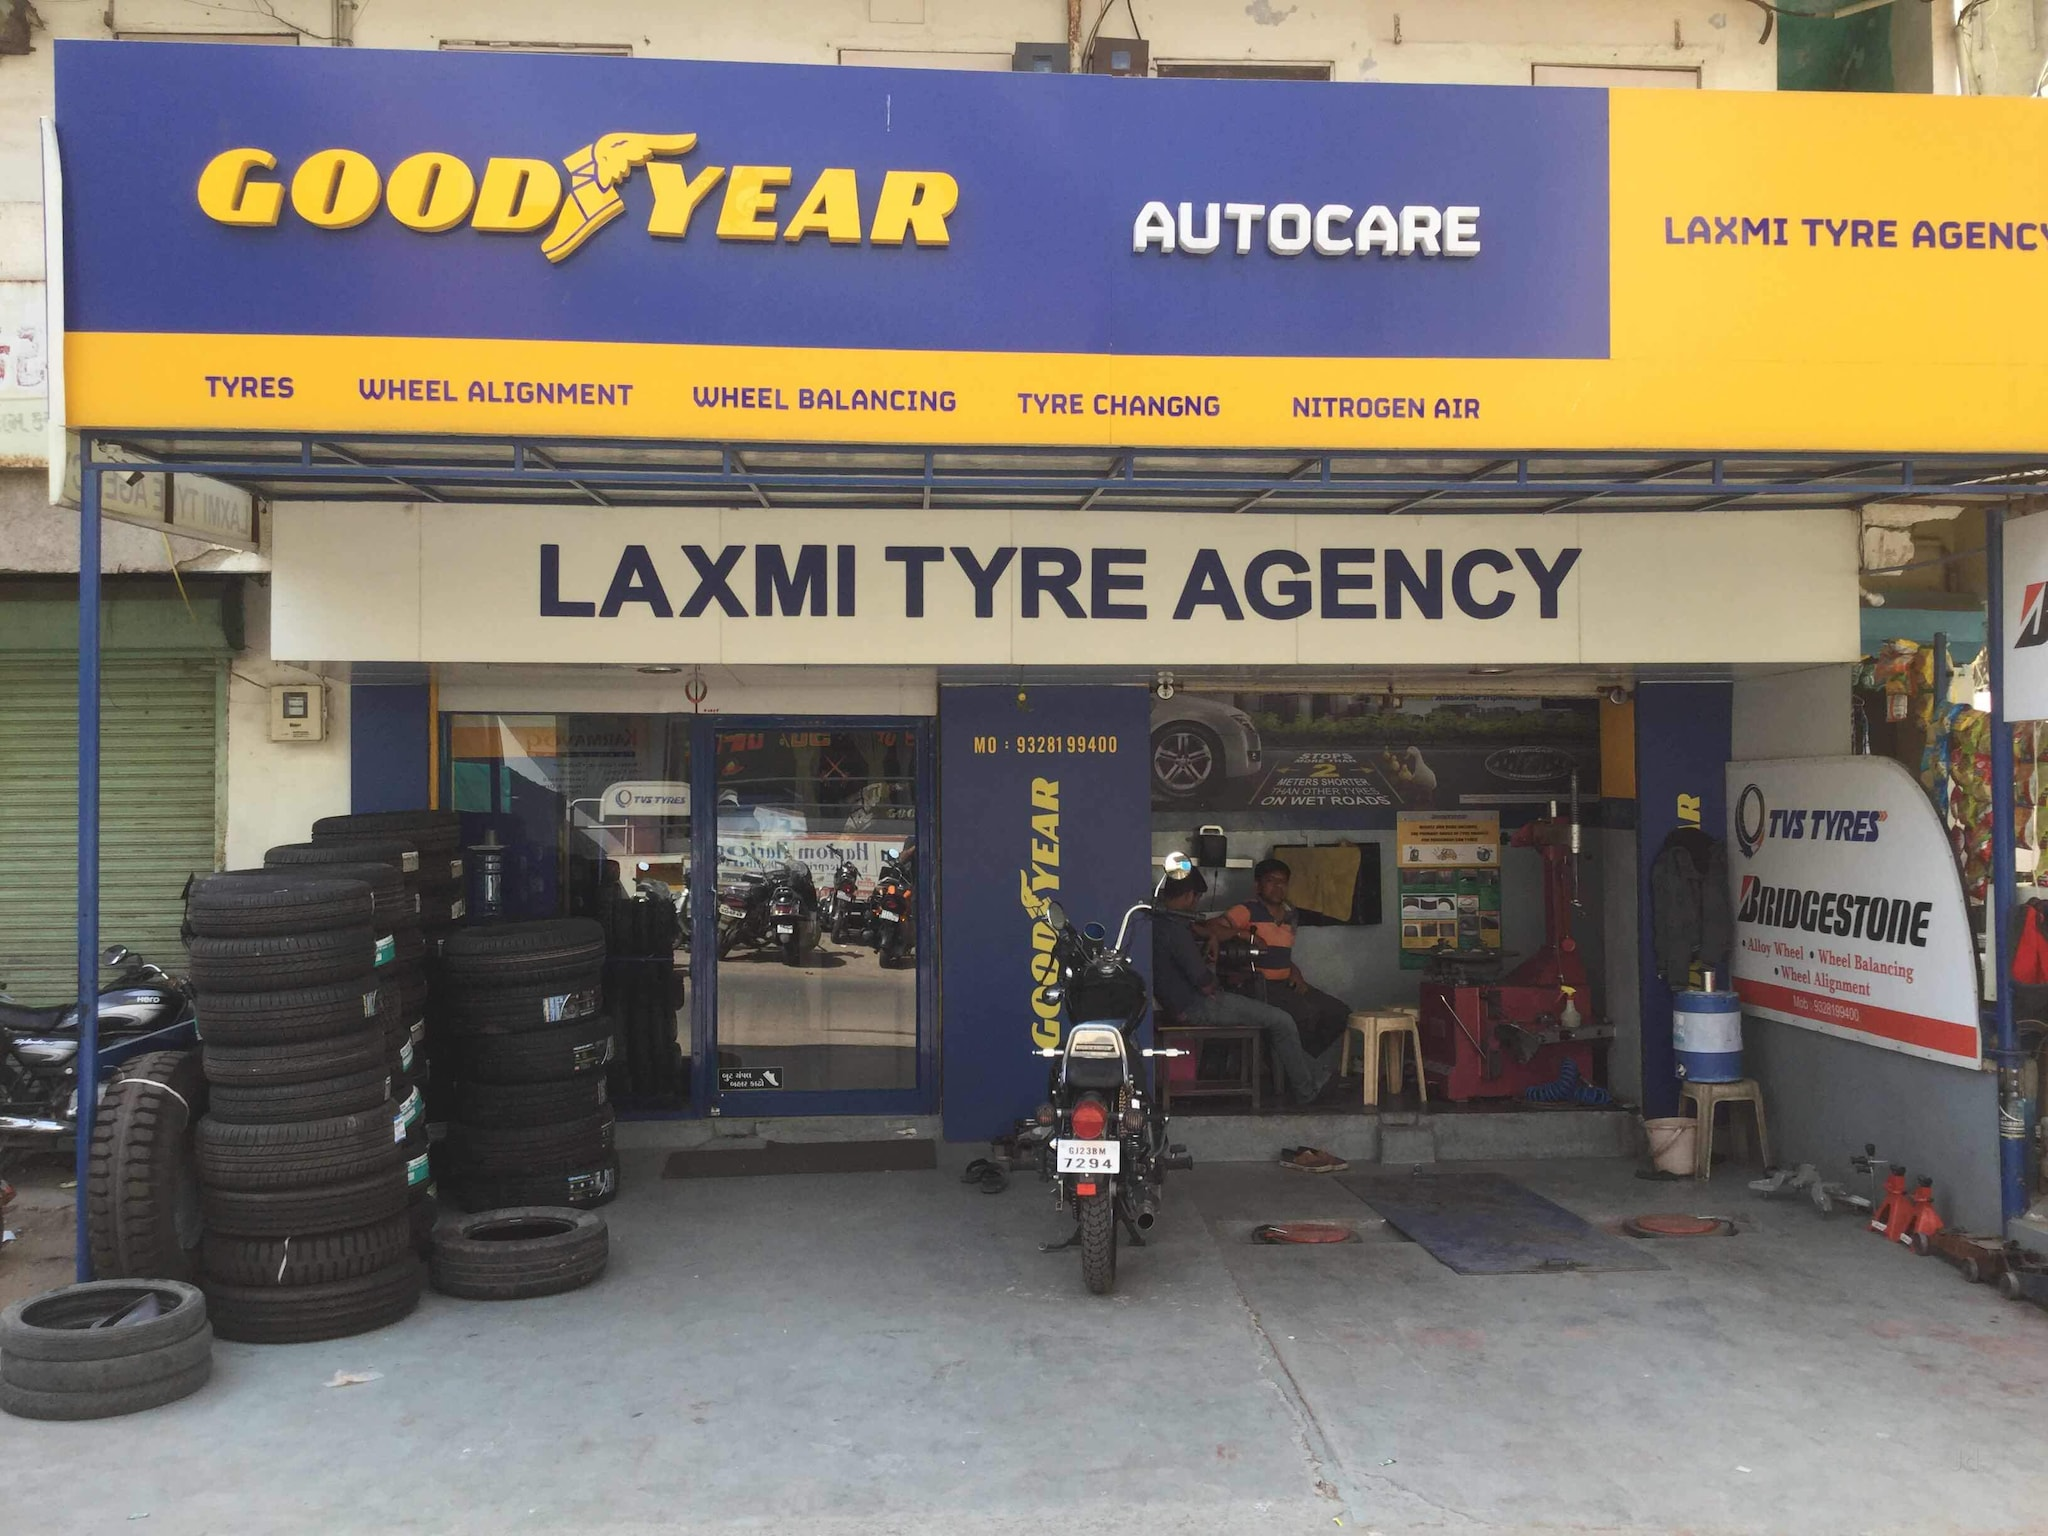 Top 8 Goodyear Tyre Dealers In Anand Best Goodyear Tyre Dealers